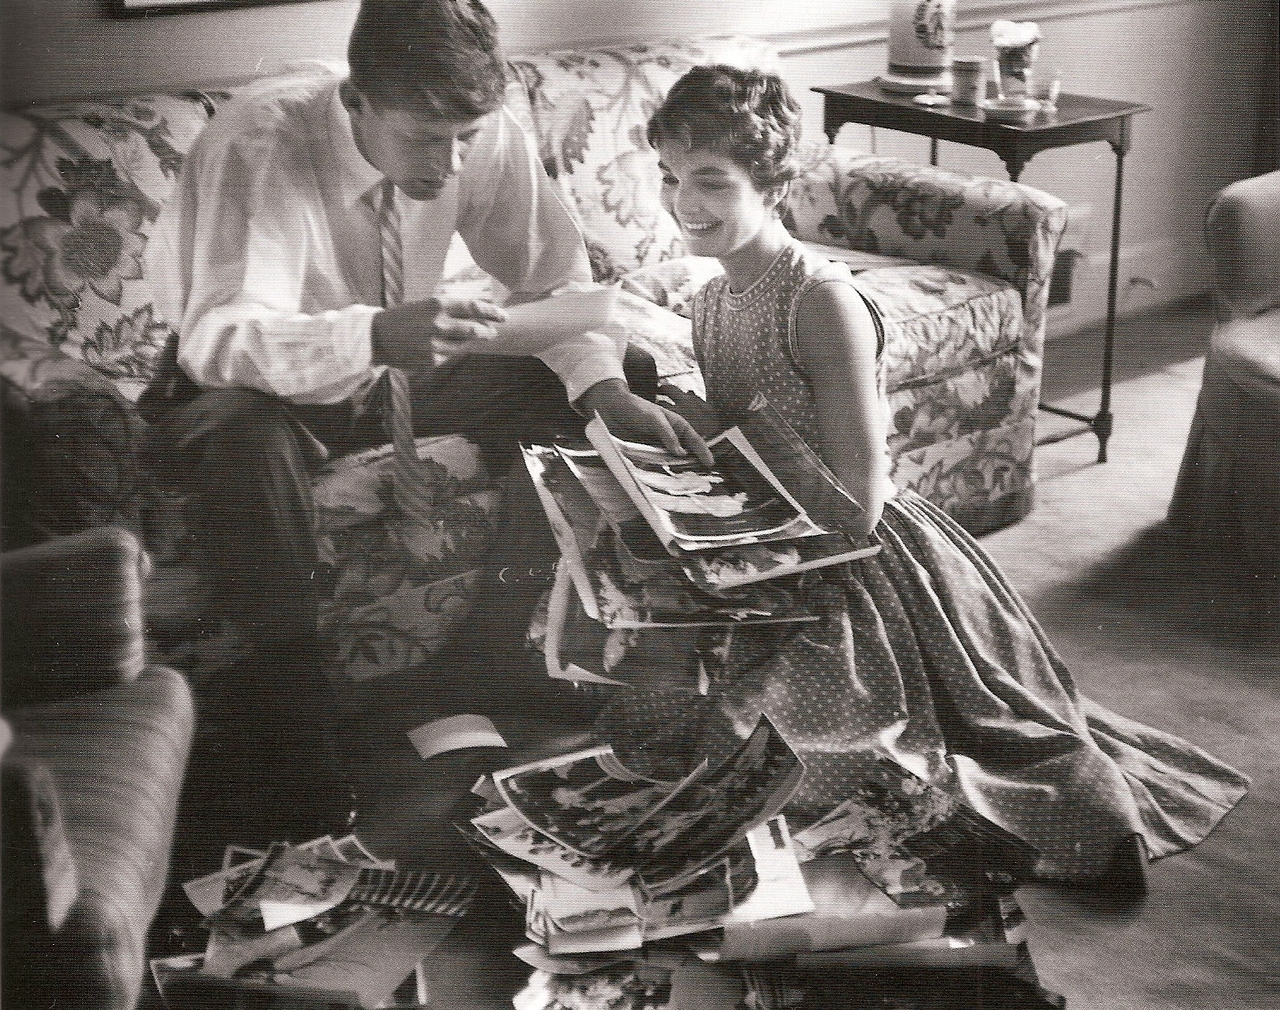 thekennedydynasty: Jack and Jackie browsing through a newly unpacked box of wedding photos, May 1954 Photograph by Orlando Suero